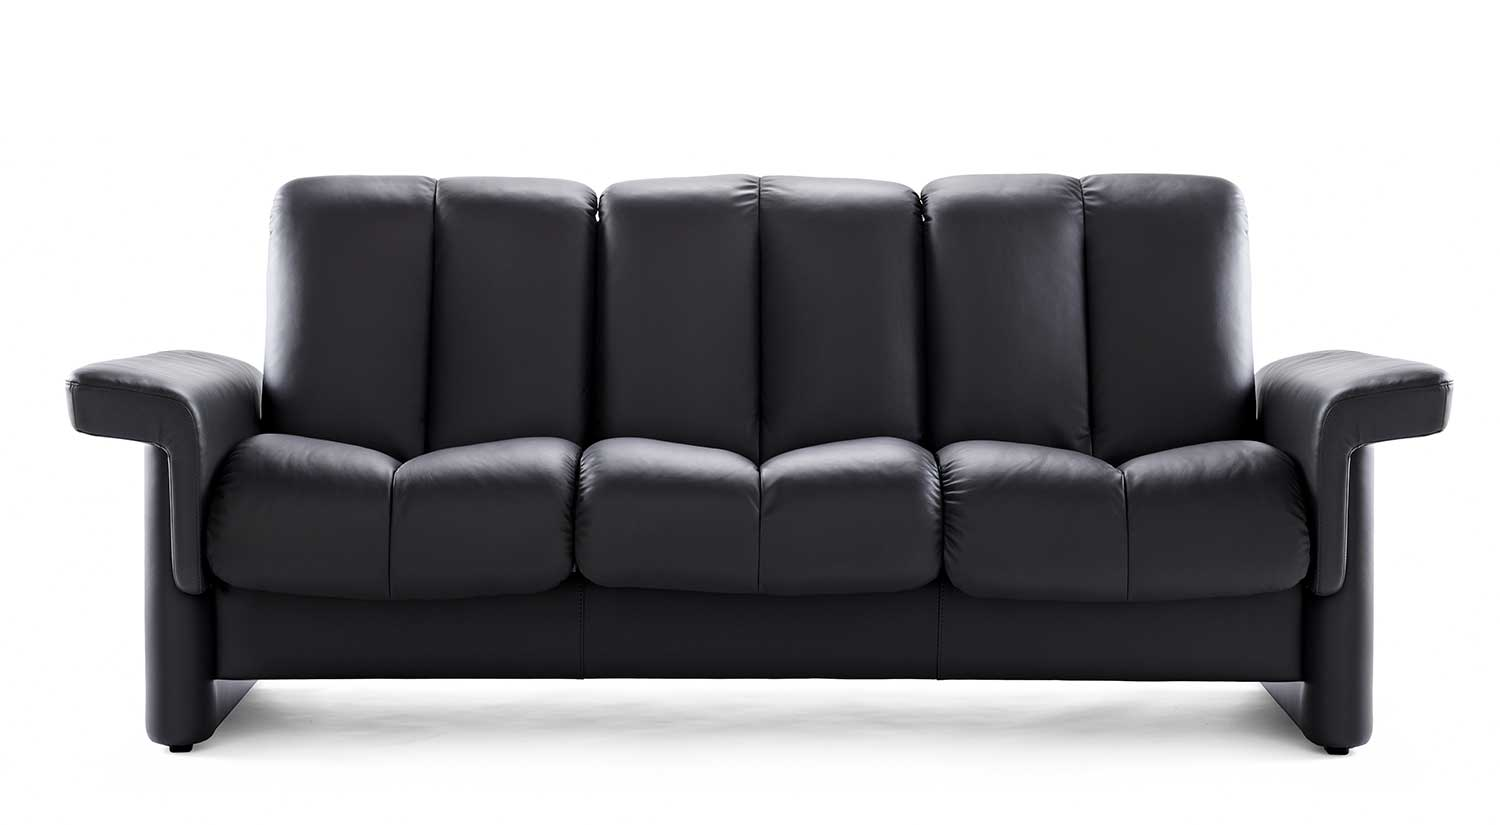 circle furniture legend stressless lowback sofa ekornes framingham. Black Bedroom Furniture Sets. Home Design Ideas